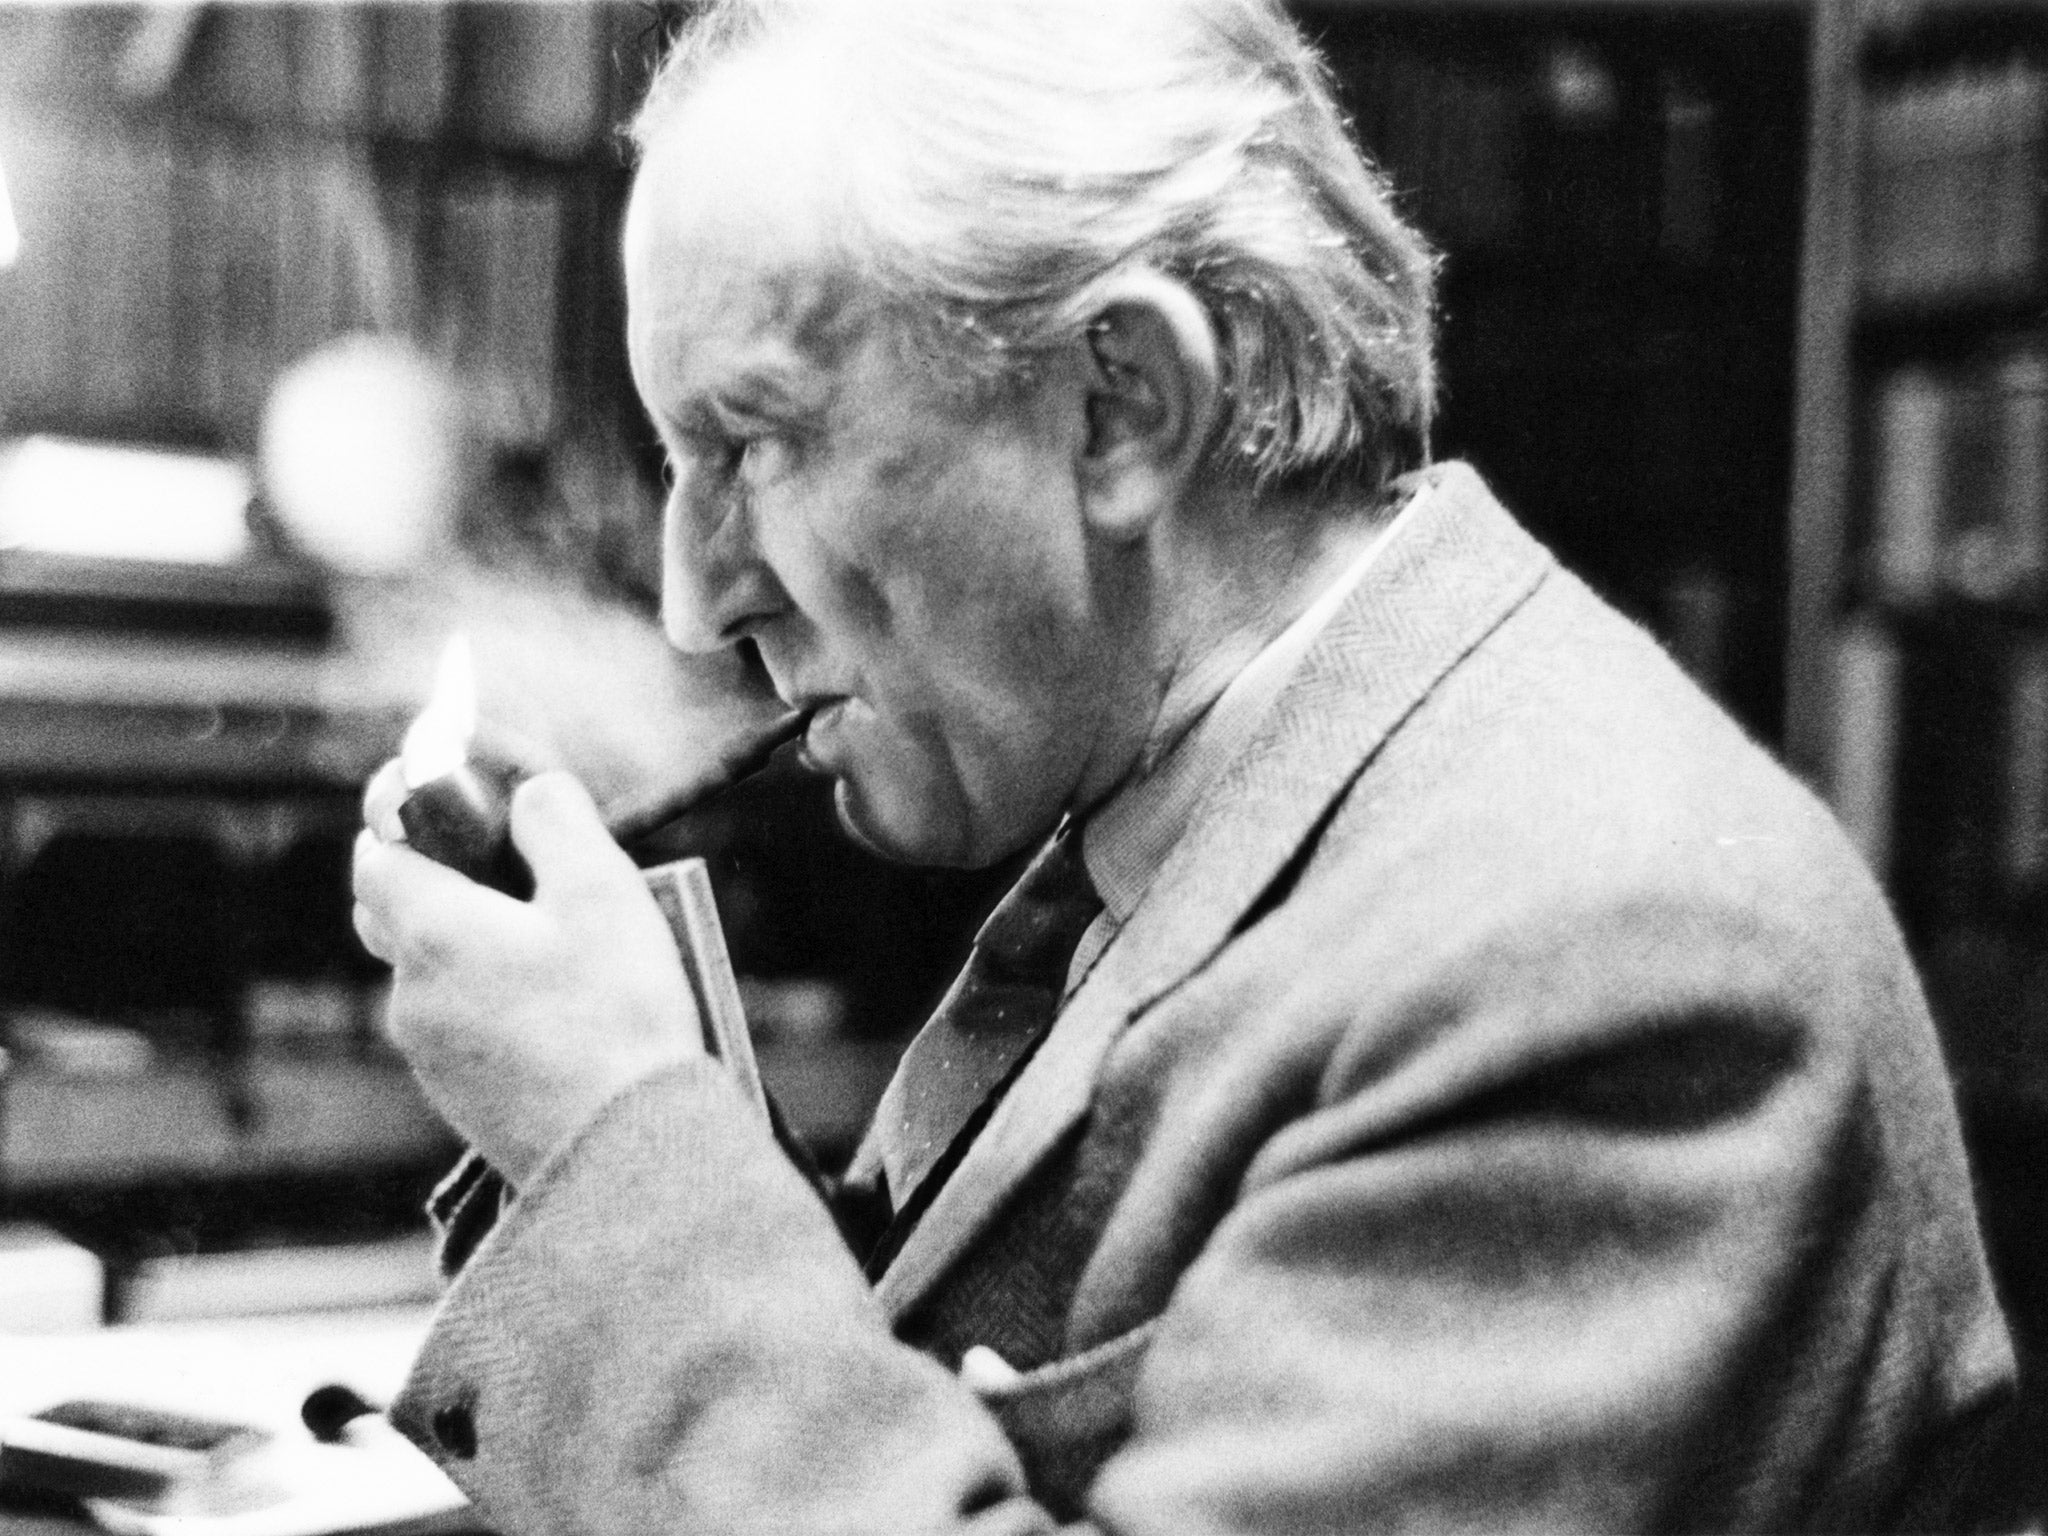 jrr tolkien essay on beowulf Beowulf: a translation and commentary is a prose (beowulf) j r r tolkien and had written in his 1940 essay on translating beowulf that turning.